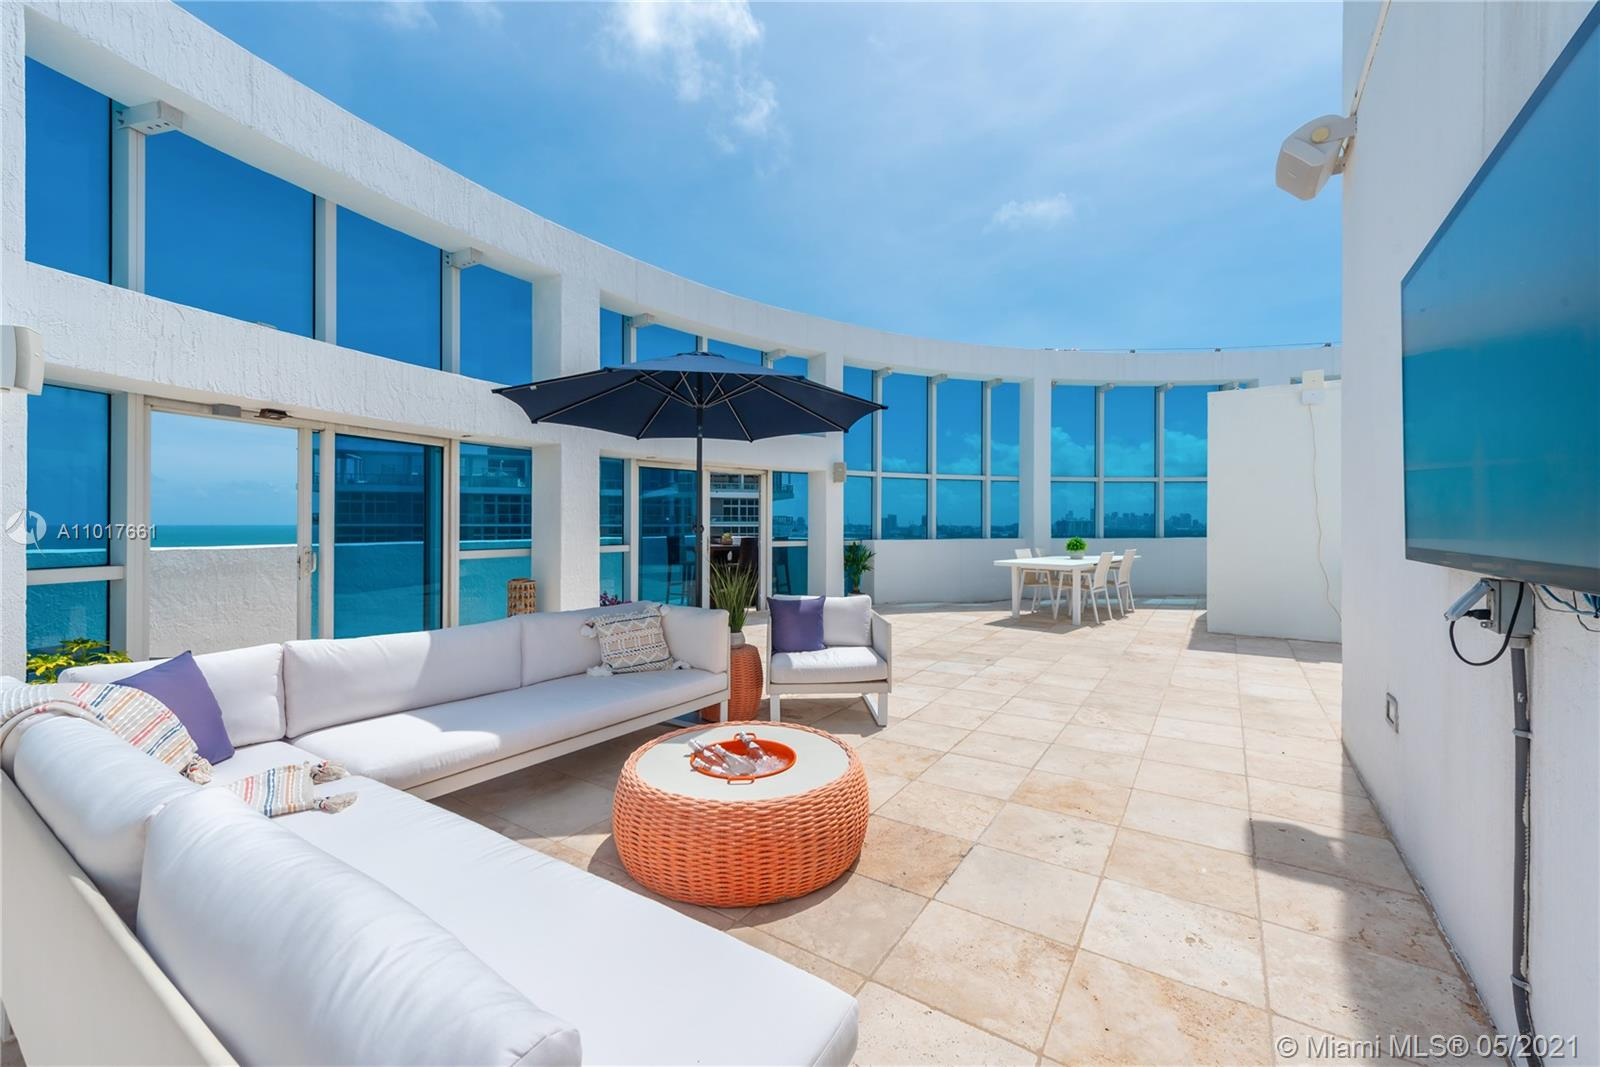 Impeccable corner 4 bedroom, 4 bathroom rare penthouse gem at the Mosaic in Miami Beach. Watch the sunrise and sunset from your private rooftop and 4 balconies, featuring stunning ocean, intracoastal and city views. The rooftop terrace is very spacious for entertaining and overlooks the entire city. A private foyer entrance leads to an open living space with an abundance of natural light. This large furnished unit boasts a split floor plan with a den/family room and 3 assigned parking spaces. The Mosaic offers wonderful amenities- a heated pool, beach service, gym, complimentary valet, front desk attendant, lobby secured, and management on site.